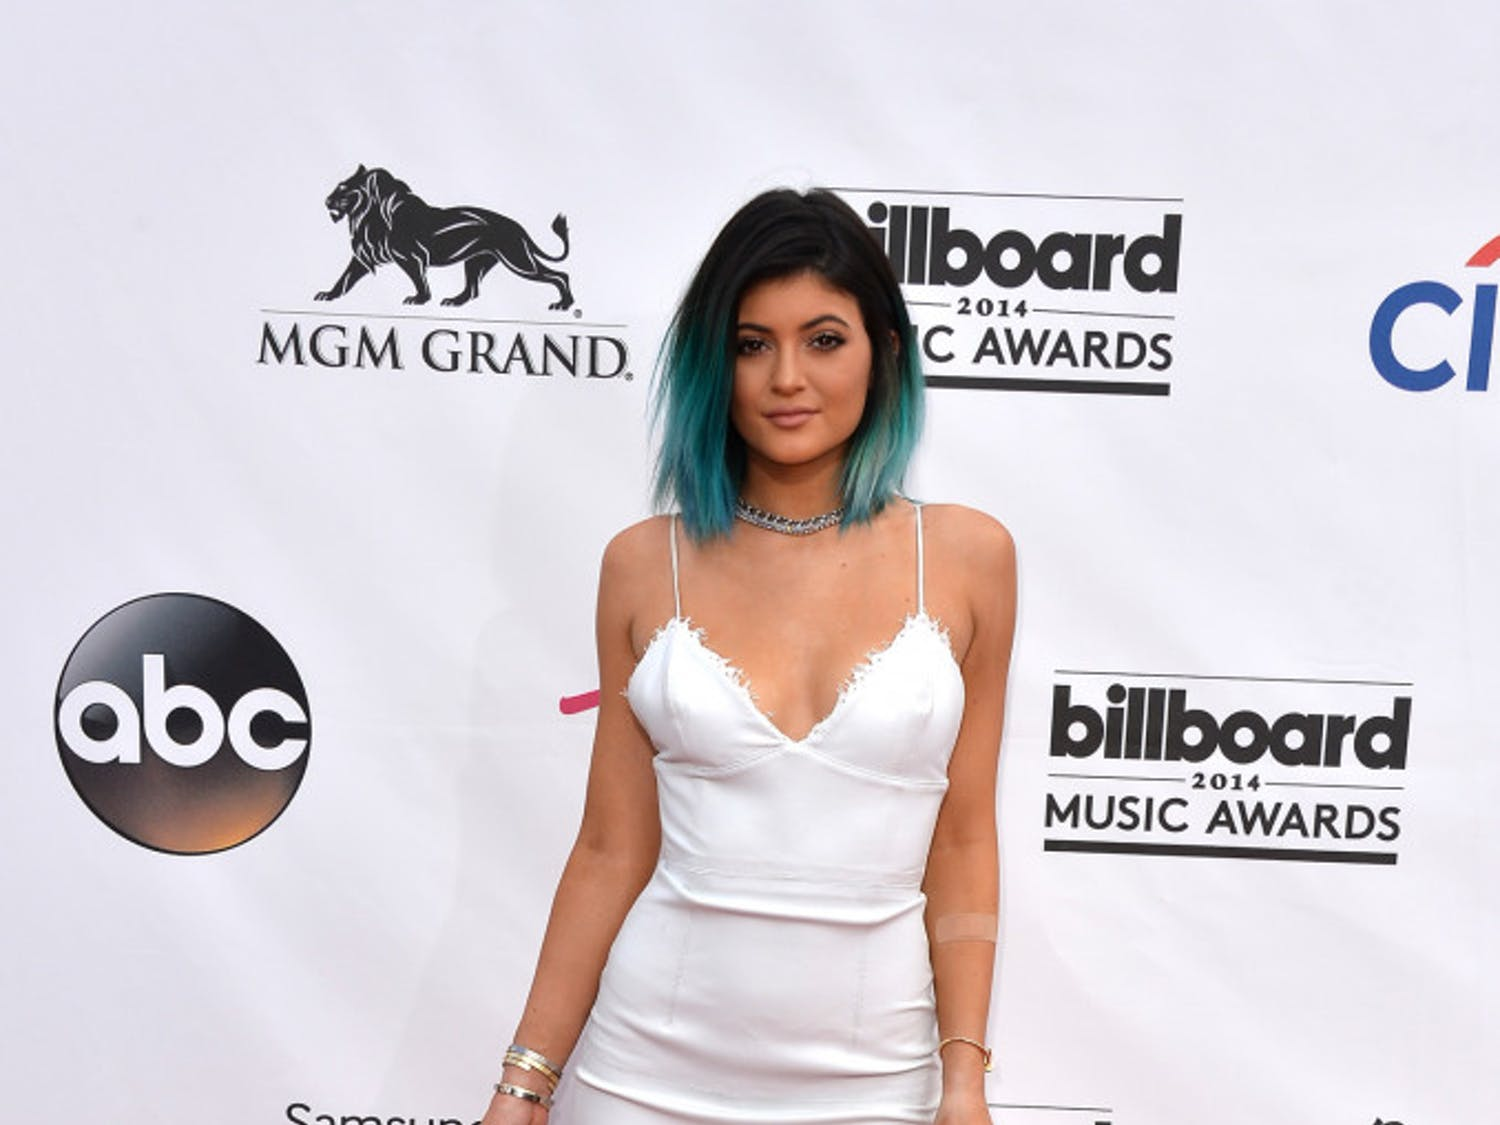 (Photo by Frazer Harrison/Getty Images via ABC) KYLIE JENNER